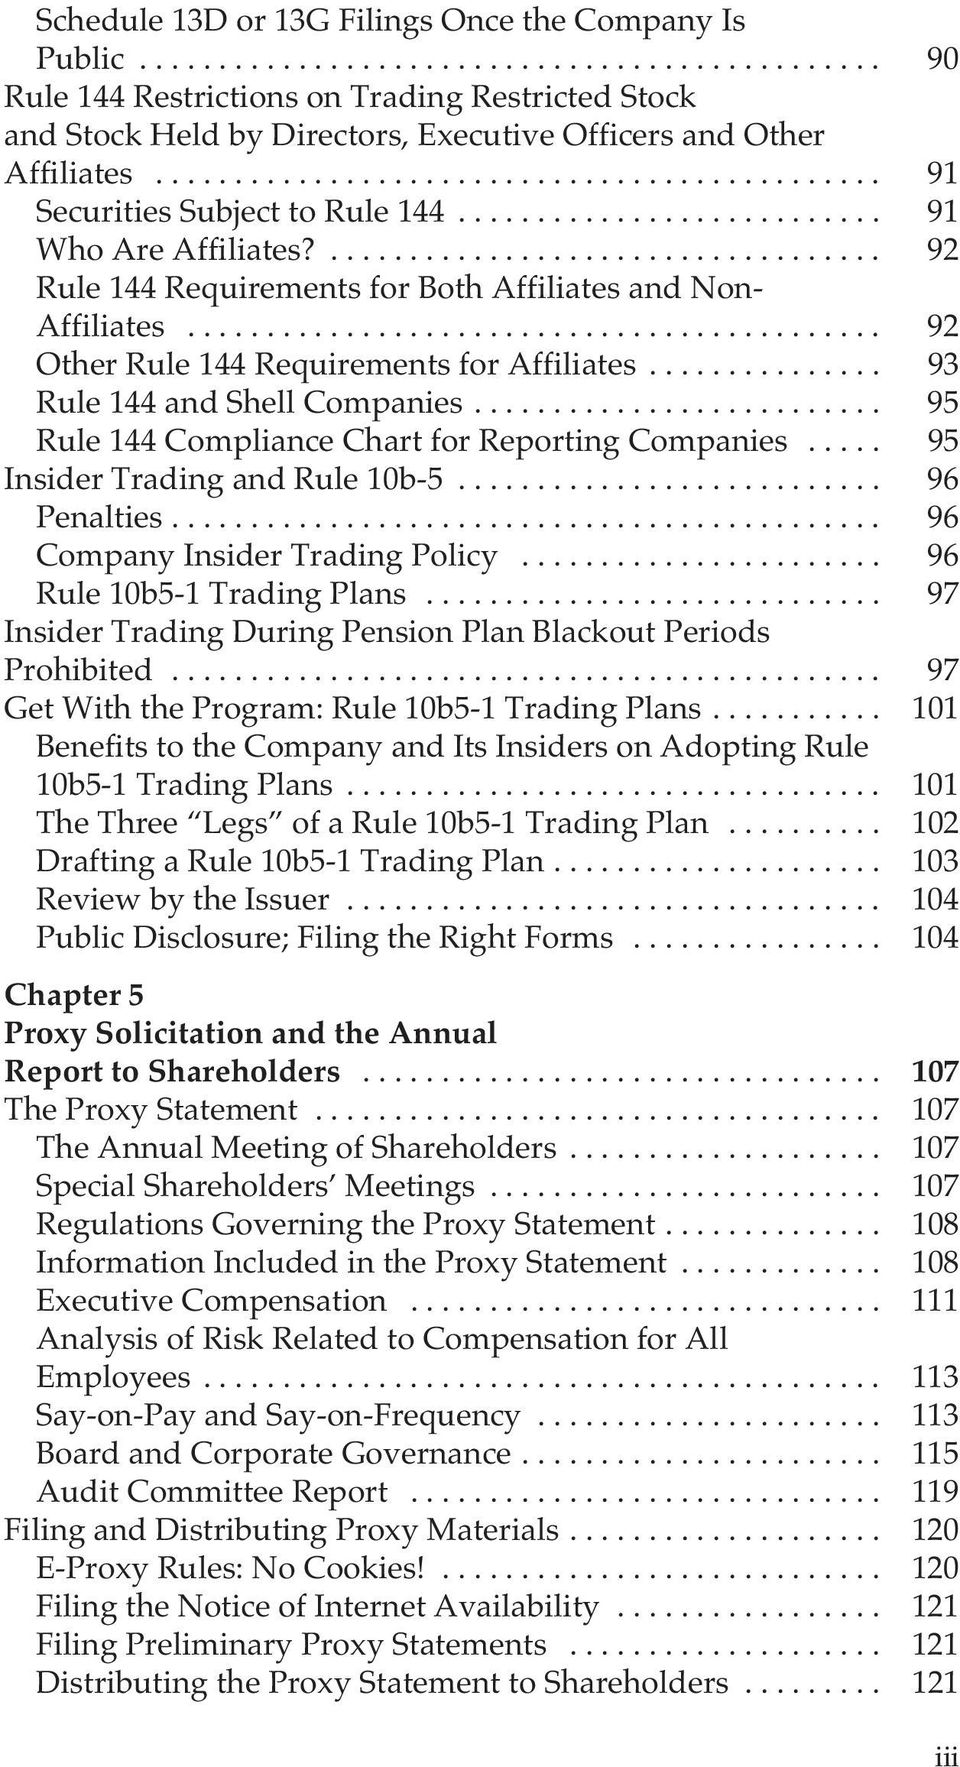 .. 93 Rule 144 and Shell Companies... 95 Rule 144 Compliance Chart for Reporting Companies... 95 Insider Trading and Rule 10b-5... 96 Penalties... 96 Company Insider Trading Policy.